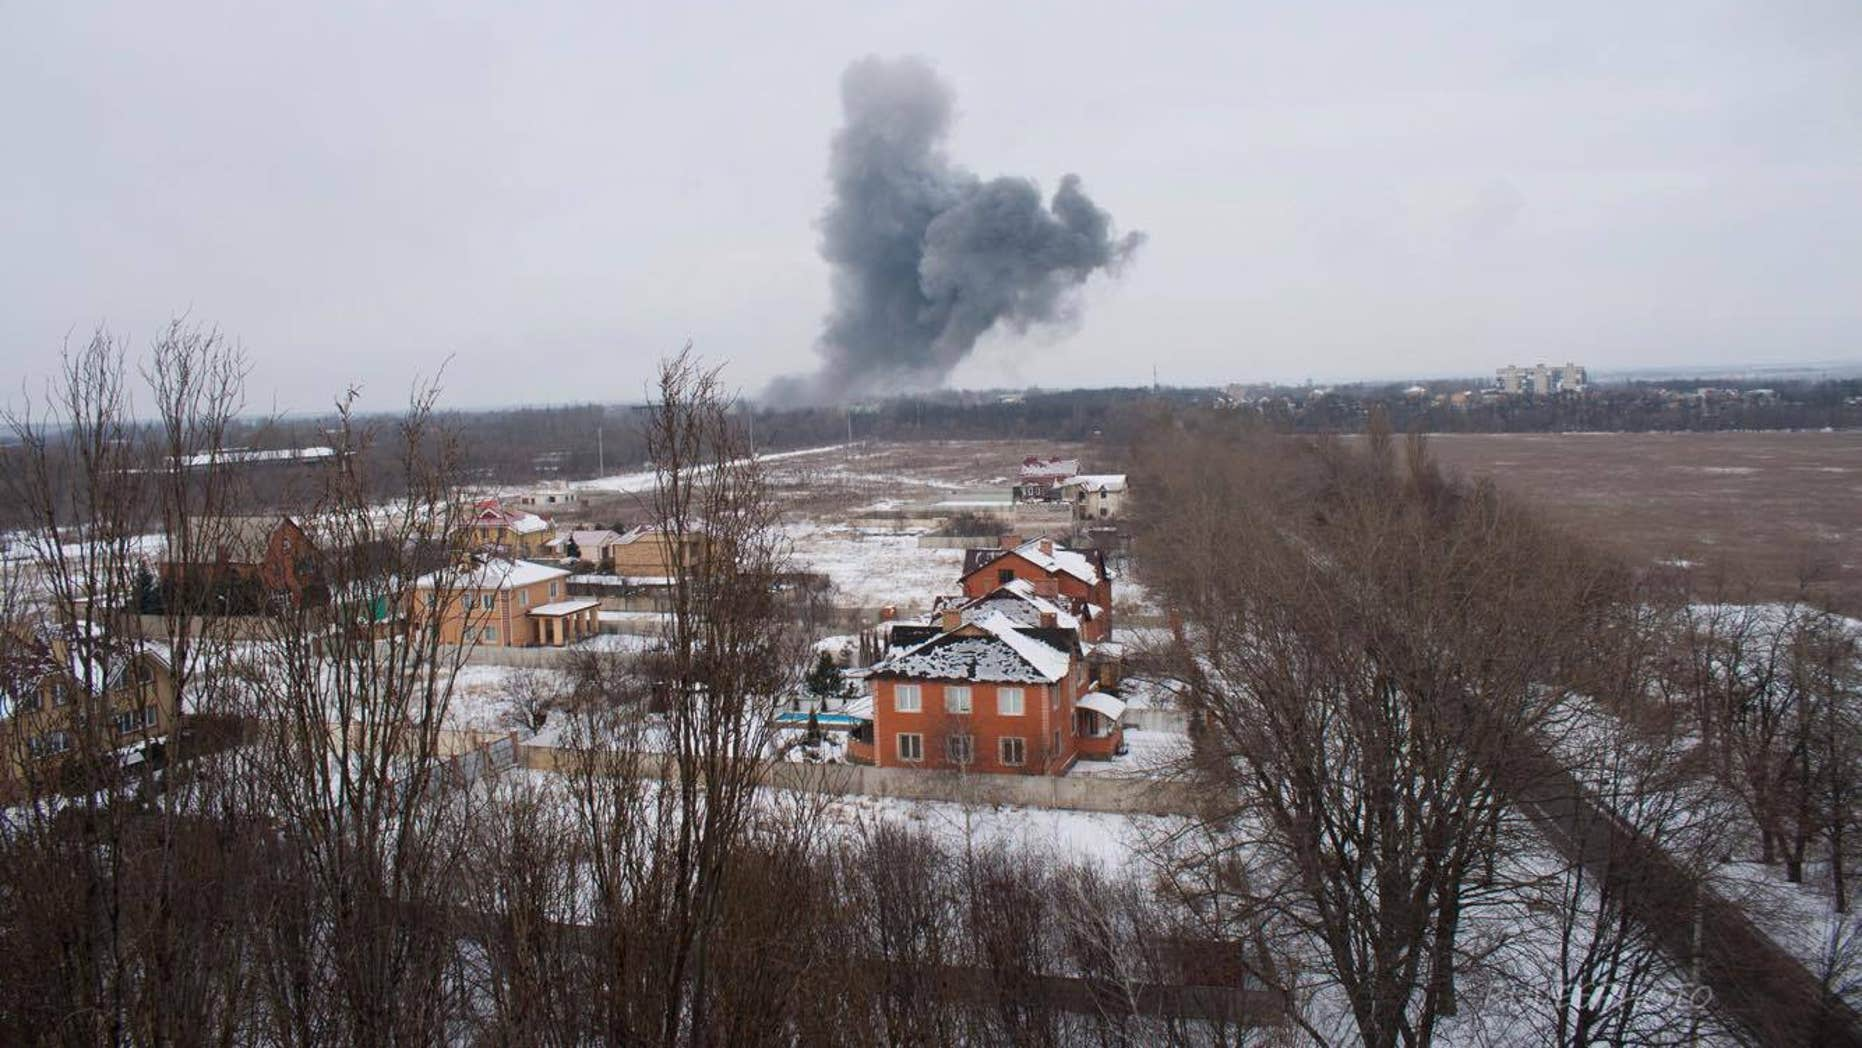 Artillery shells hit industrial areas in Donetsk as the conflict enters its third year.